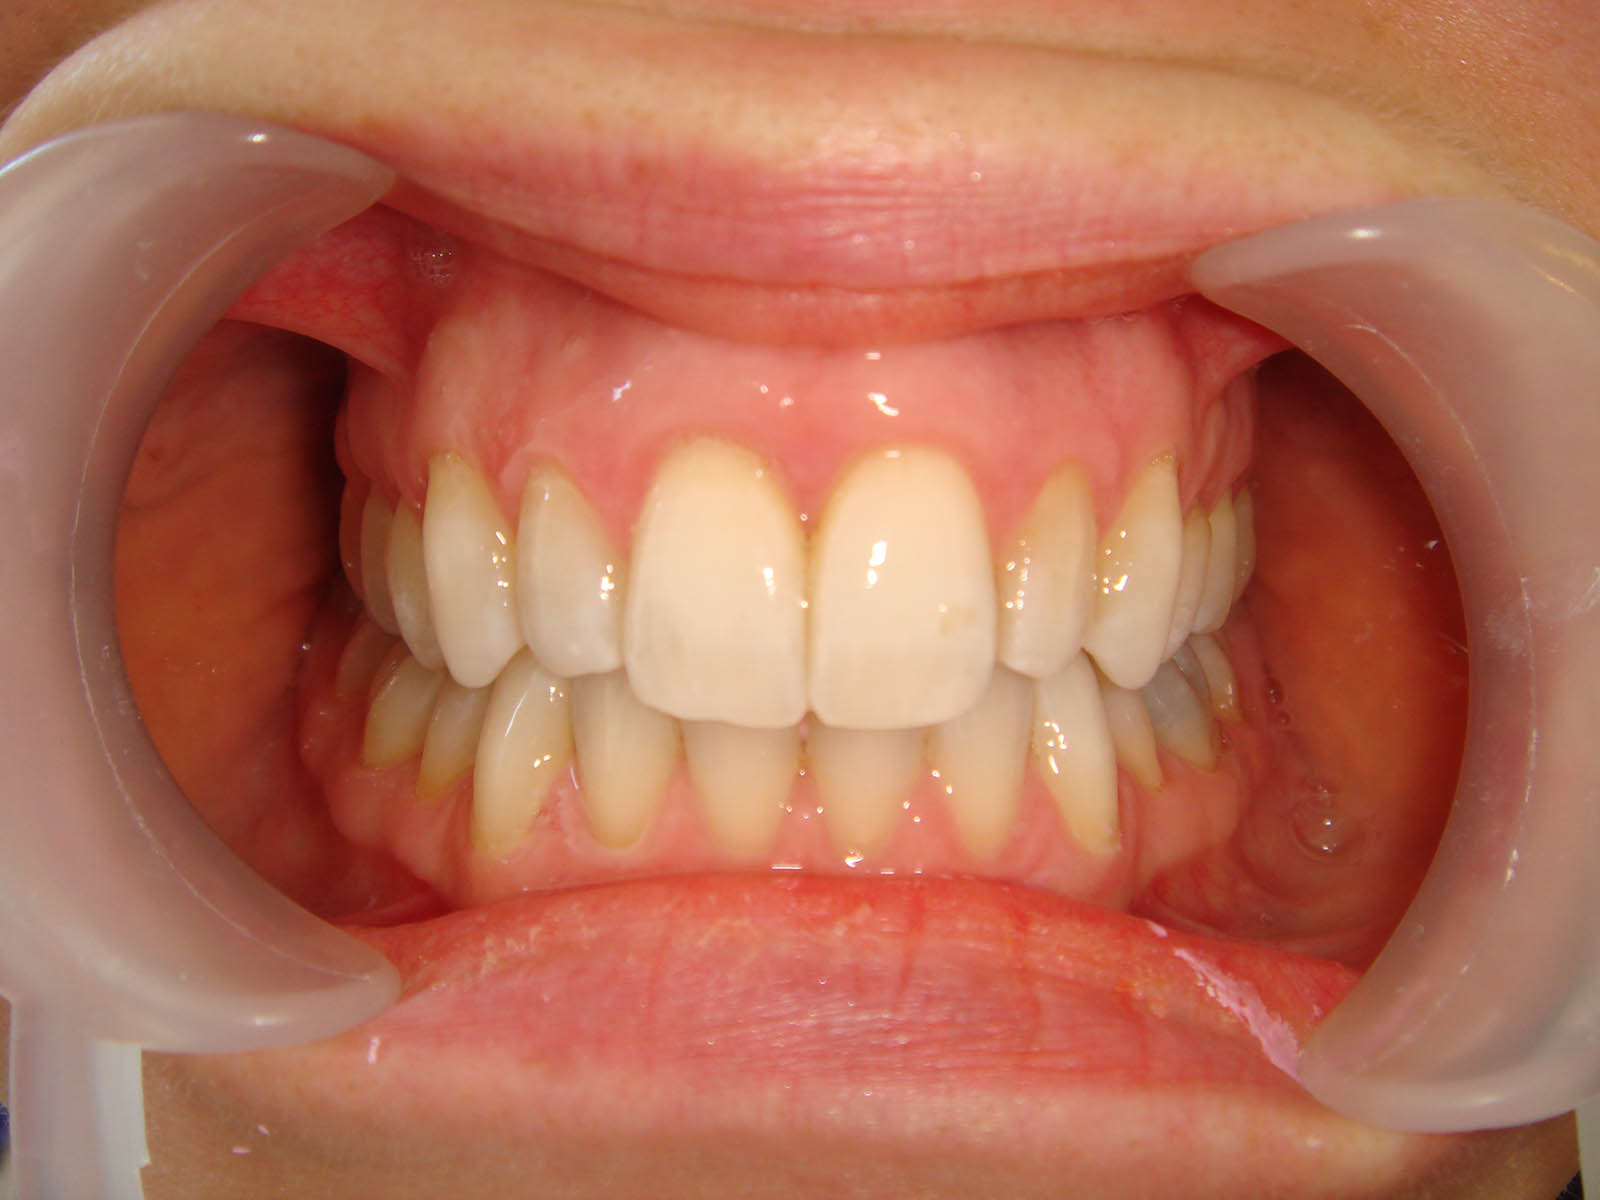 Treated With Invisalign i7 in 14 Weeks: - After